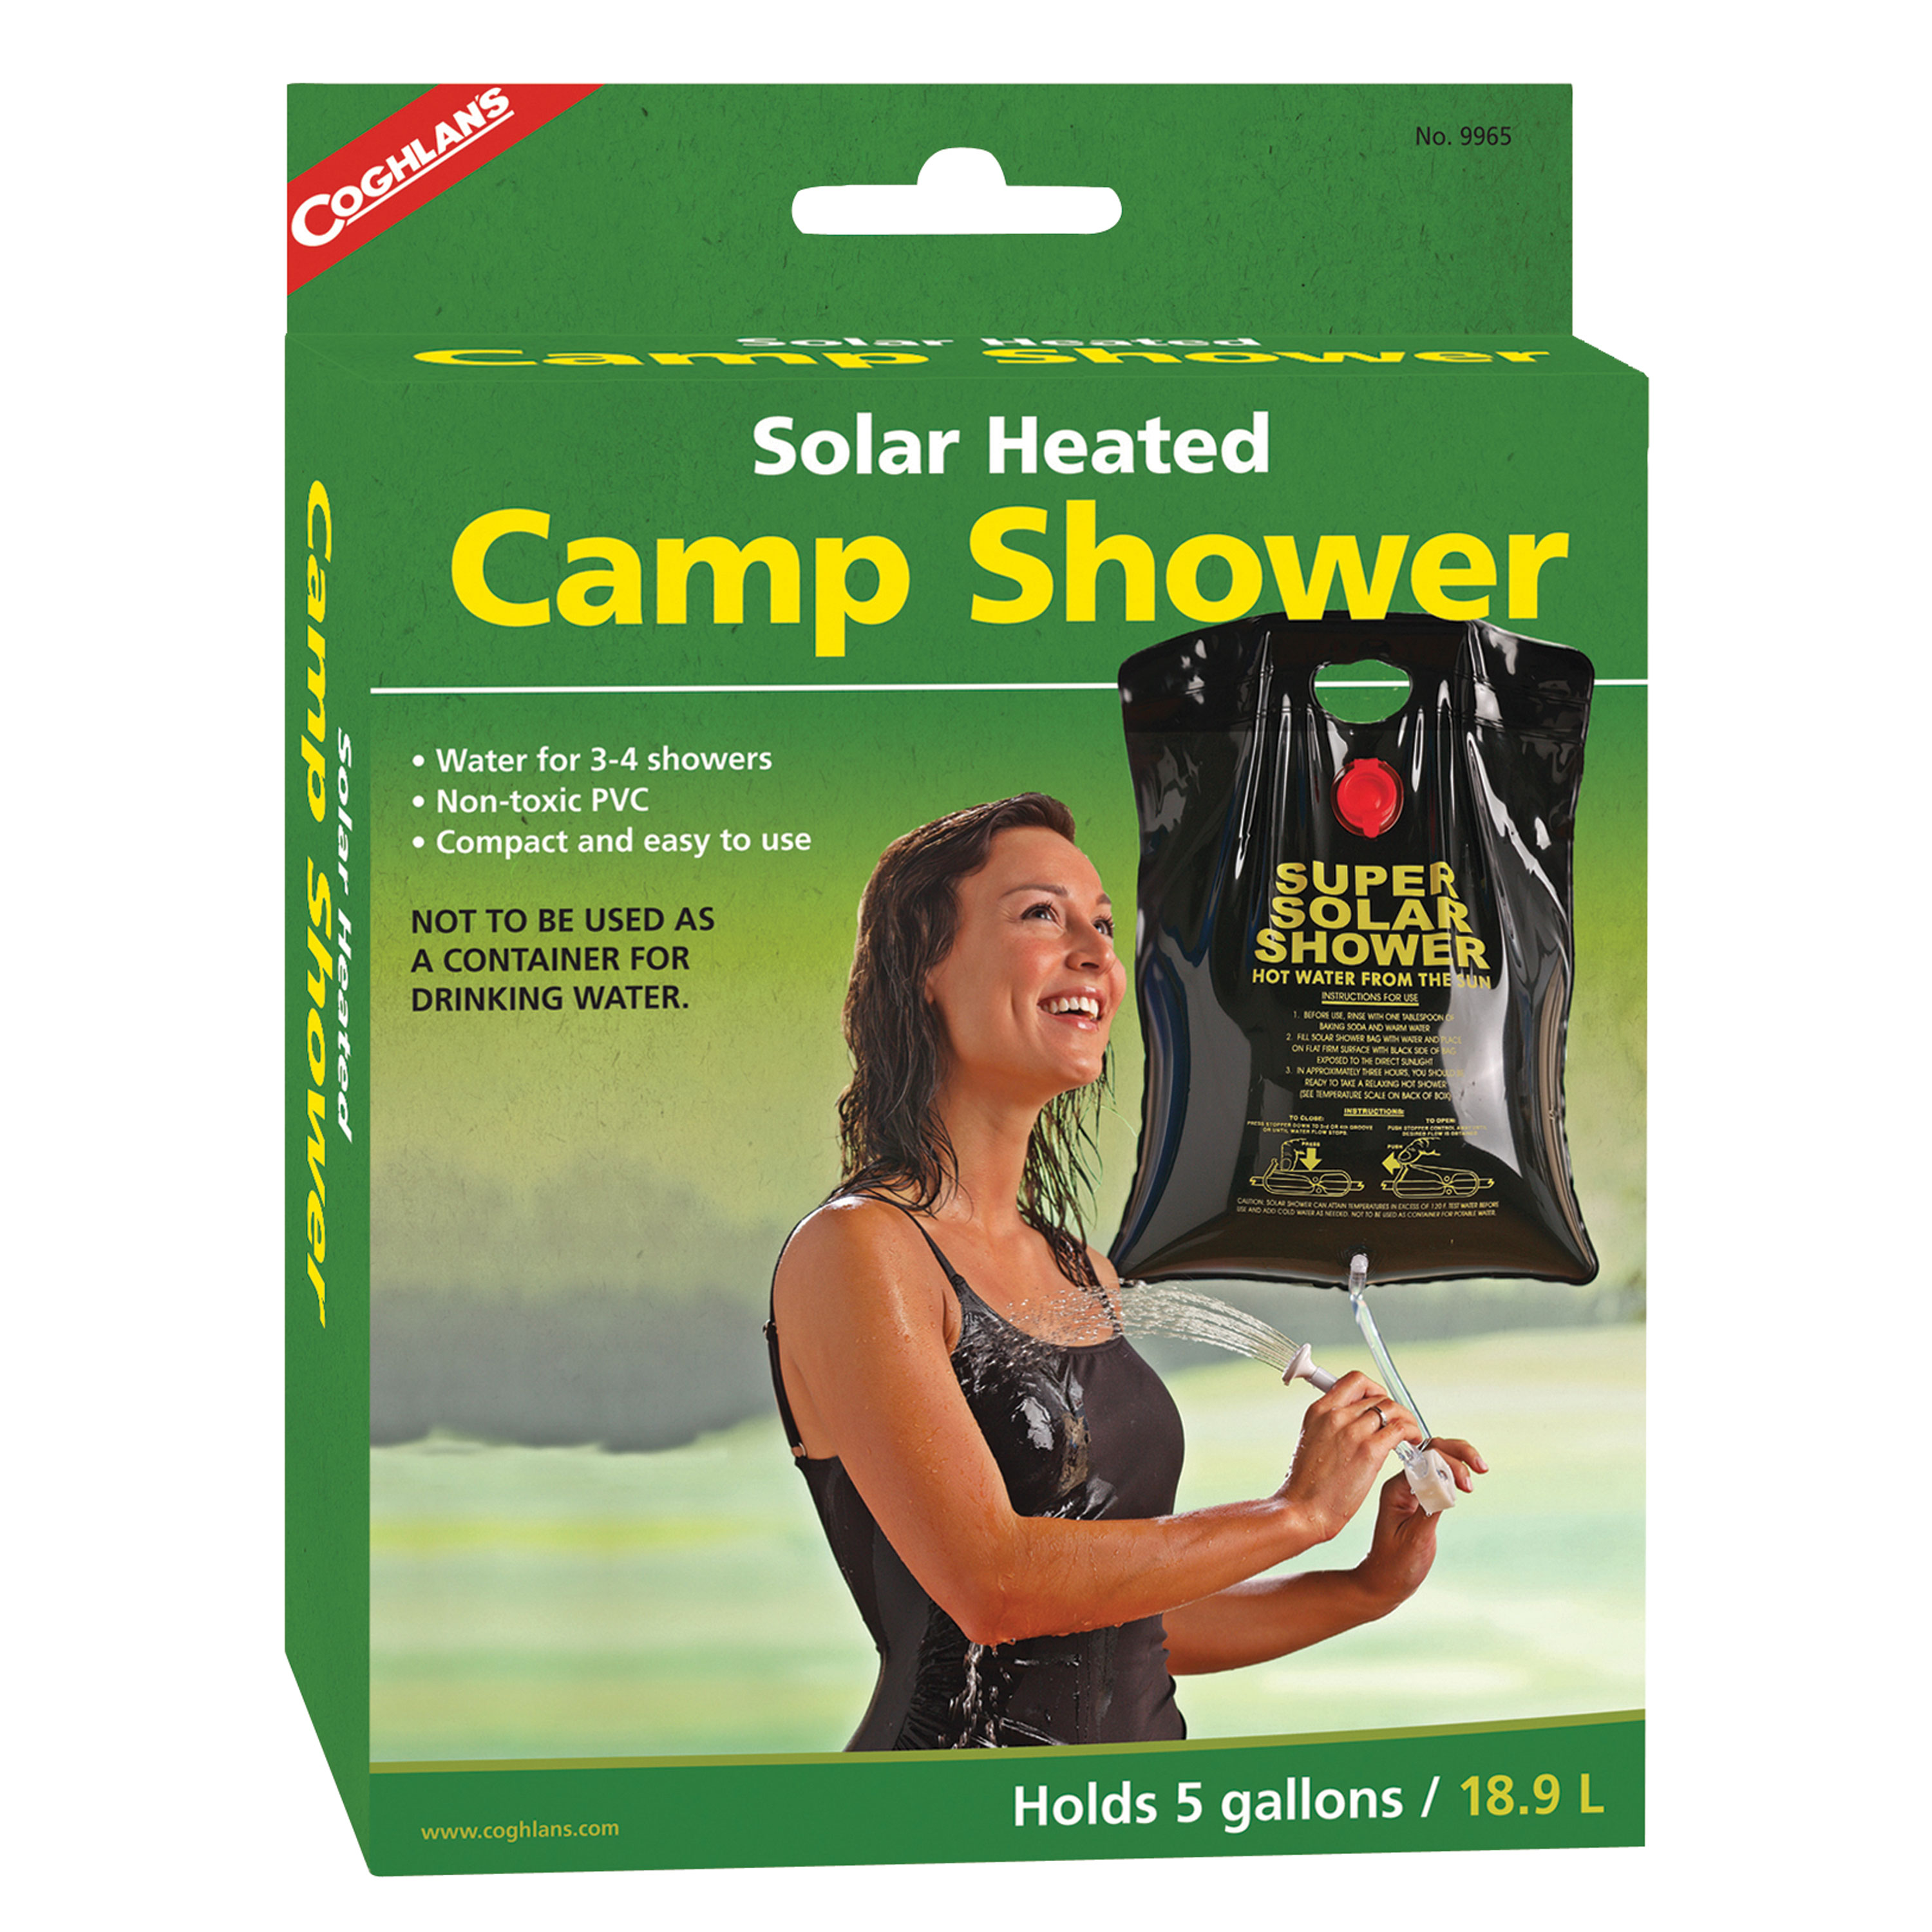 Coghlan's 9965 Camp Shower